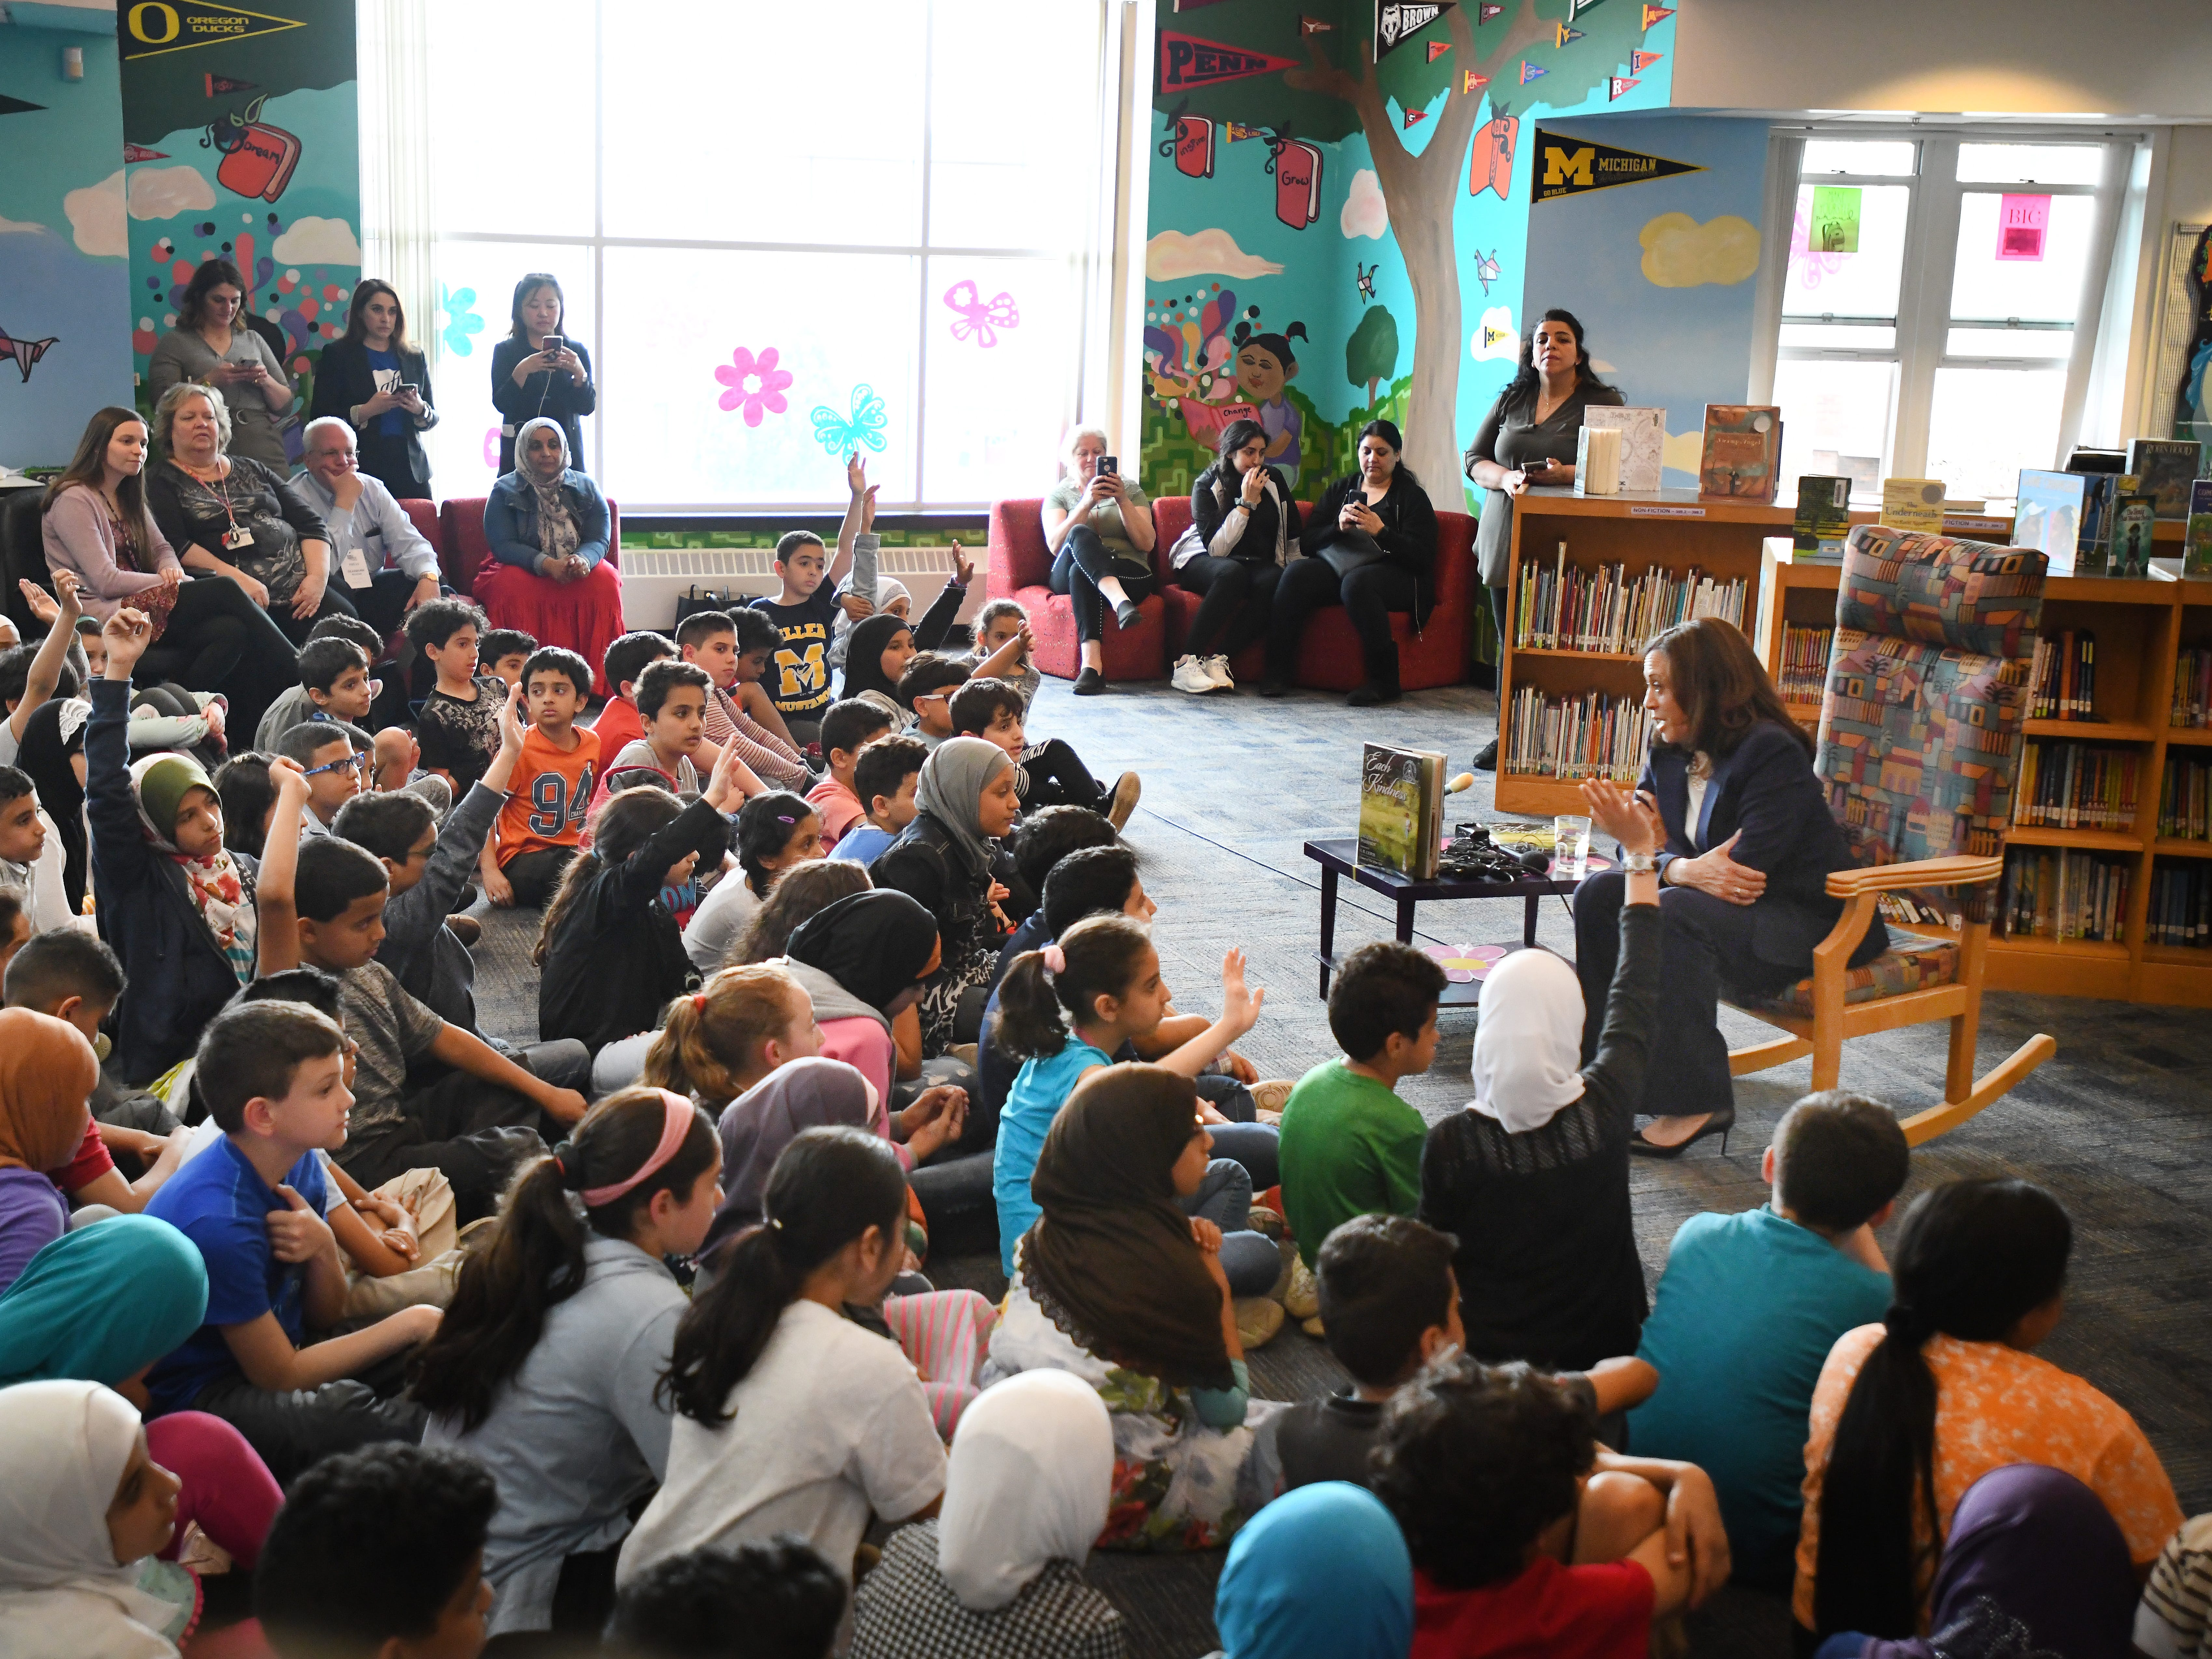 U.S. Senator Kamala Harris reads a story and chats with 4th grade Dearborn elementary students at Miller Elementary School.